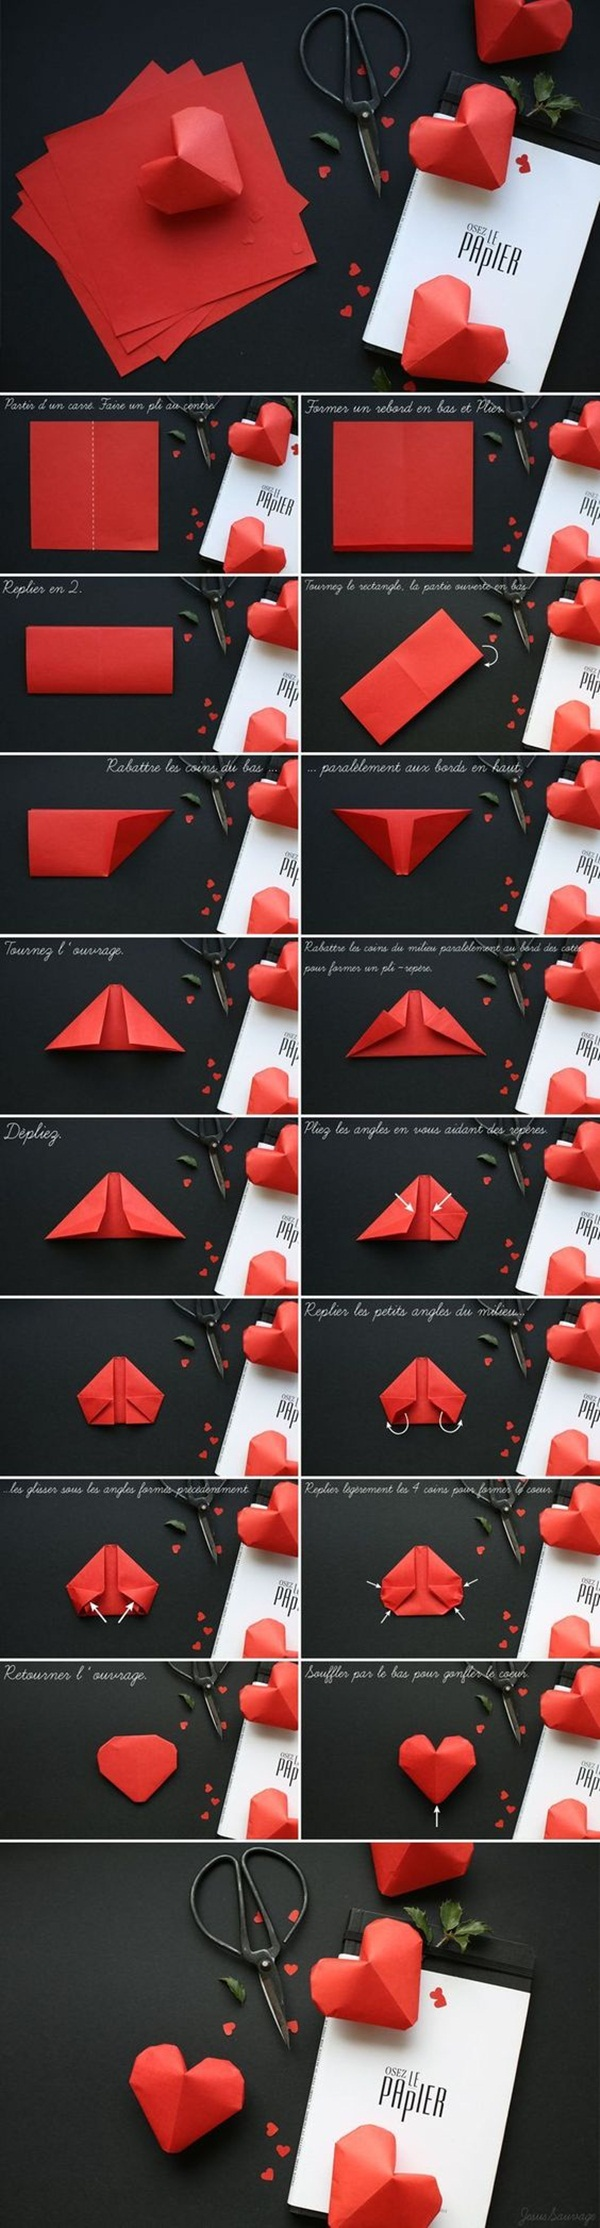 easy-origami-for-kids12